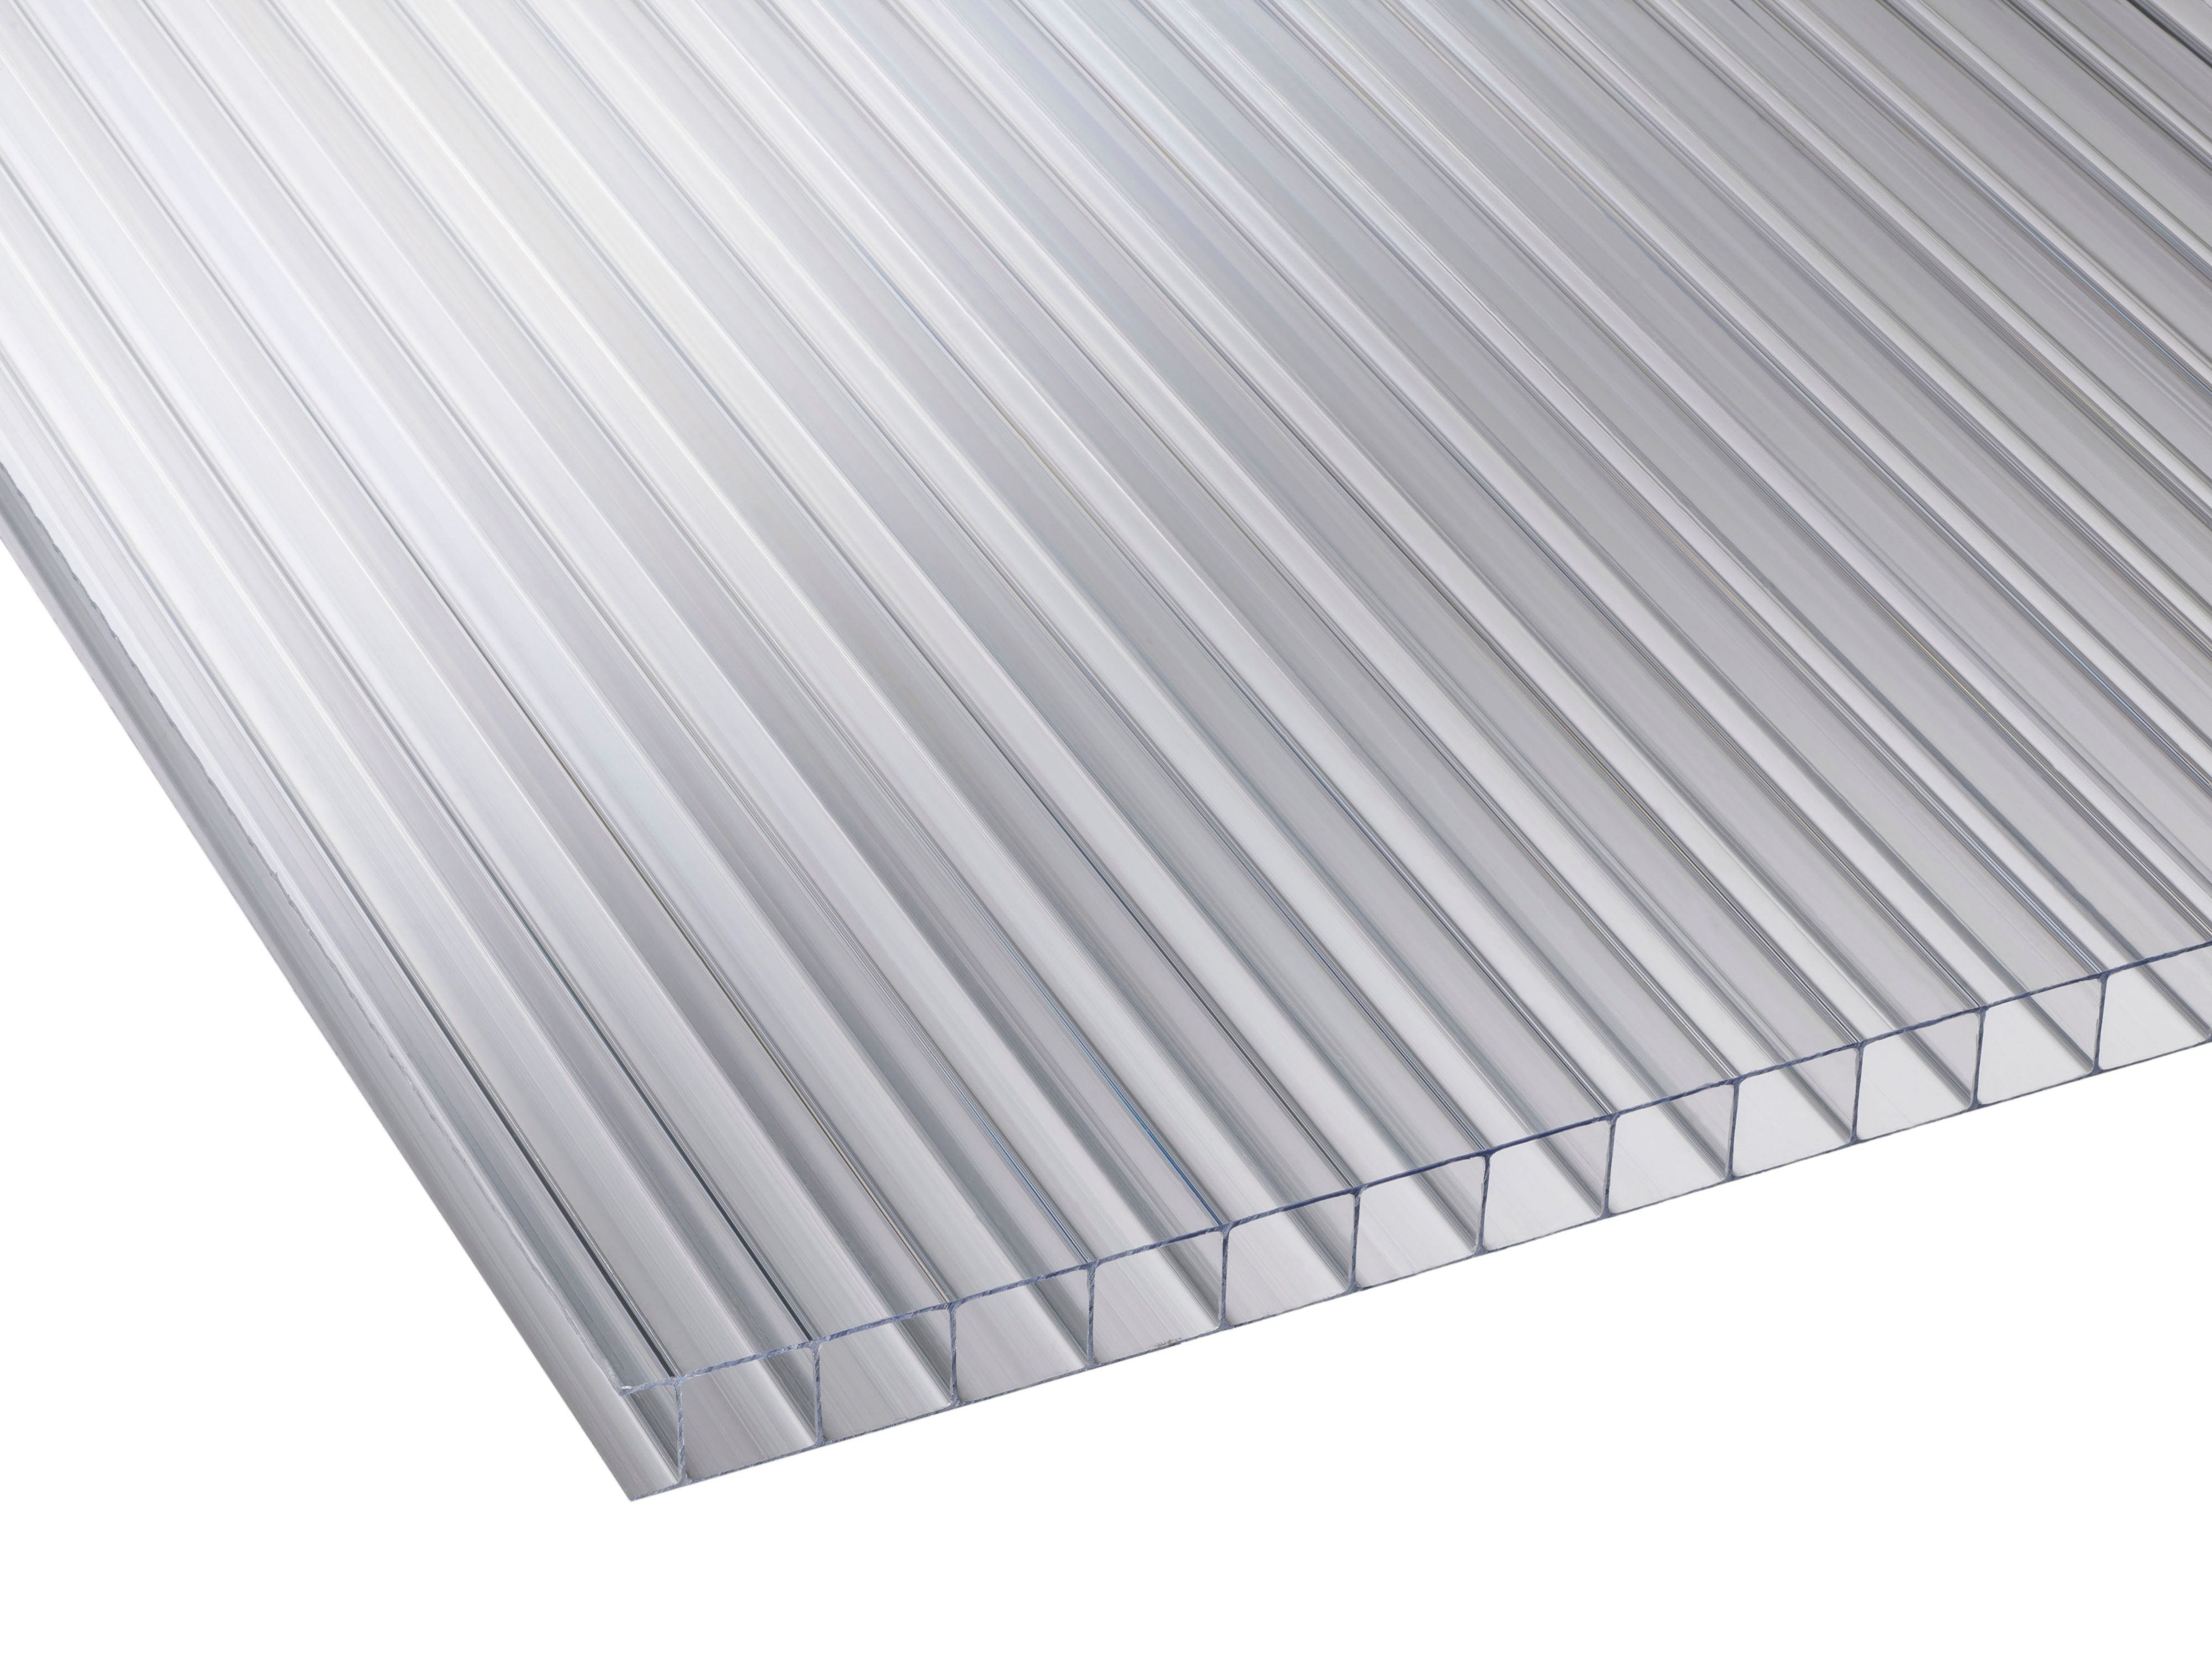 Clear Multiwall Polycarbonate Roofing Sheet 3m X 700mm, Pack Of 5